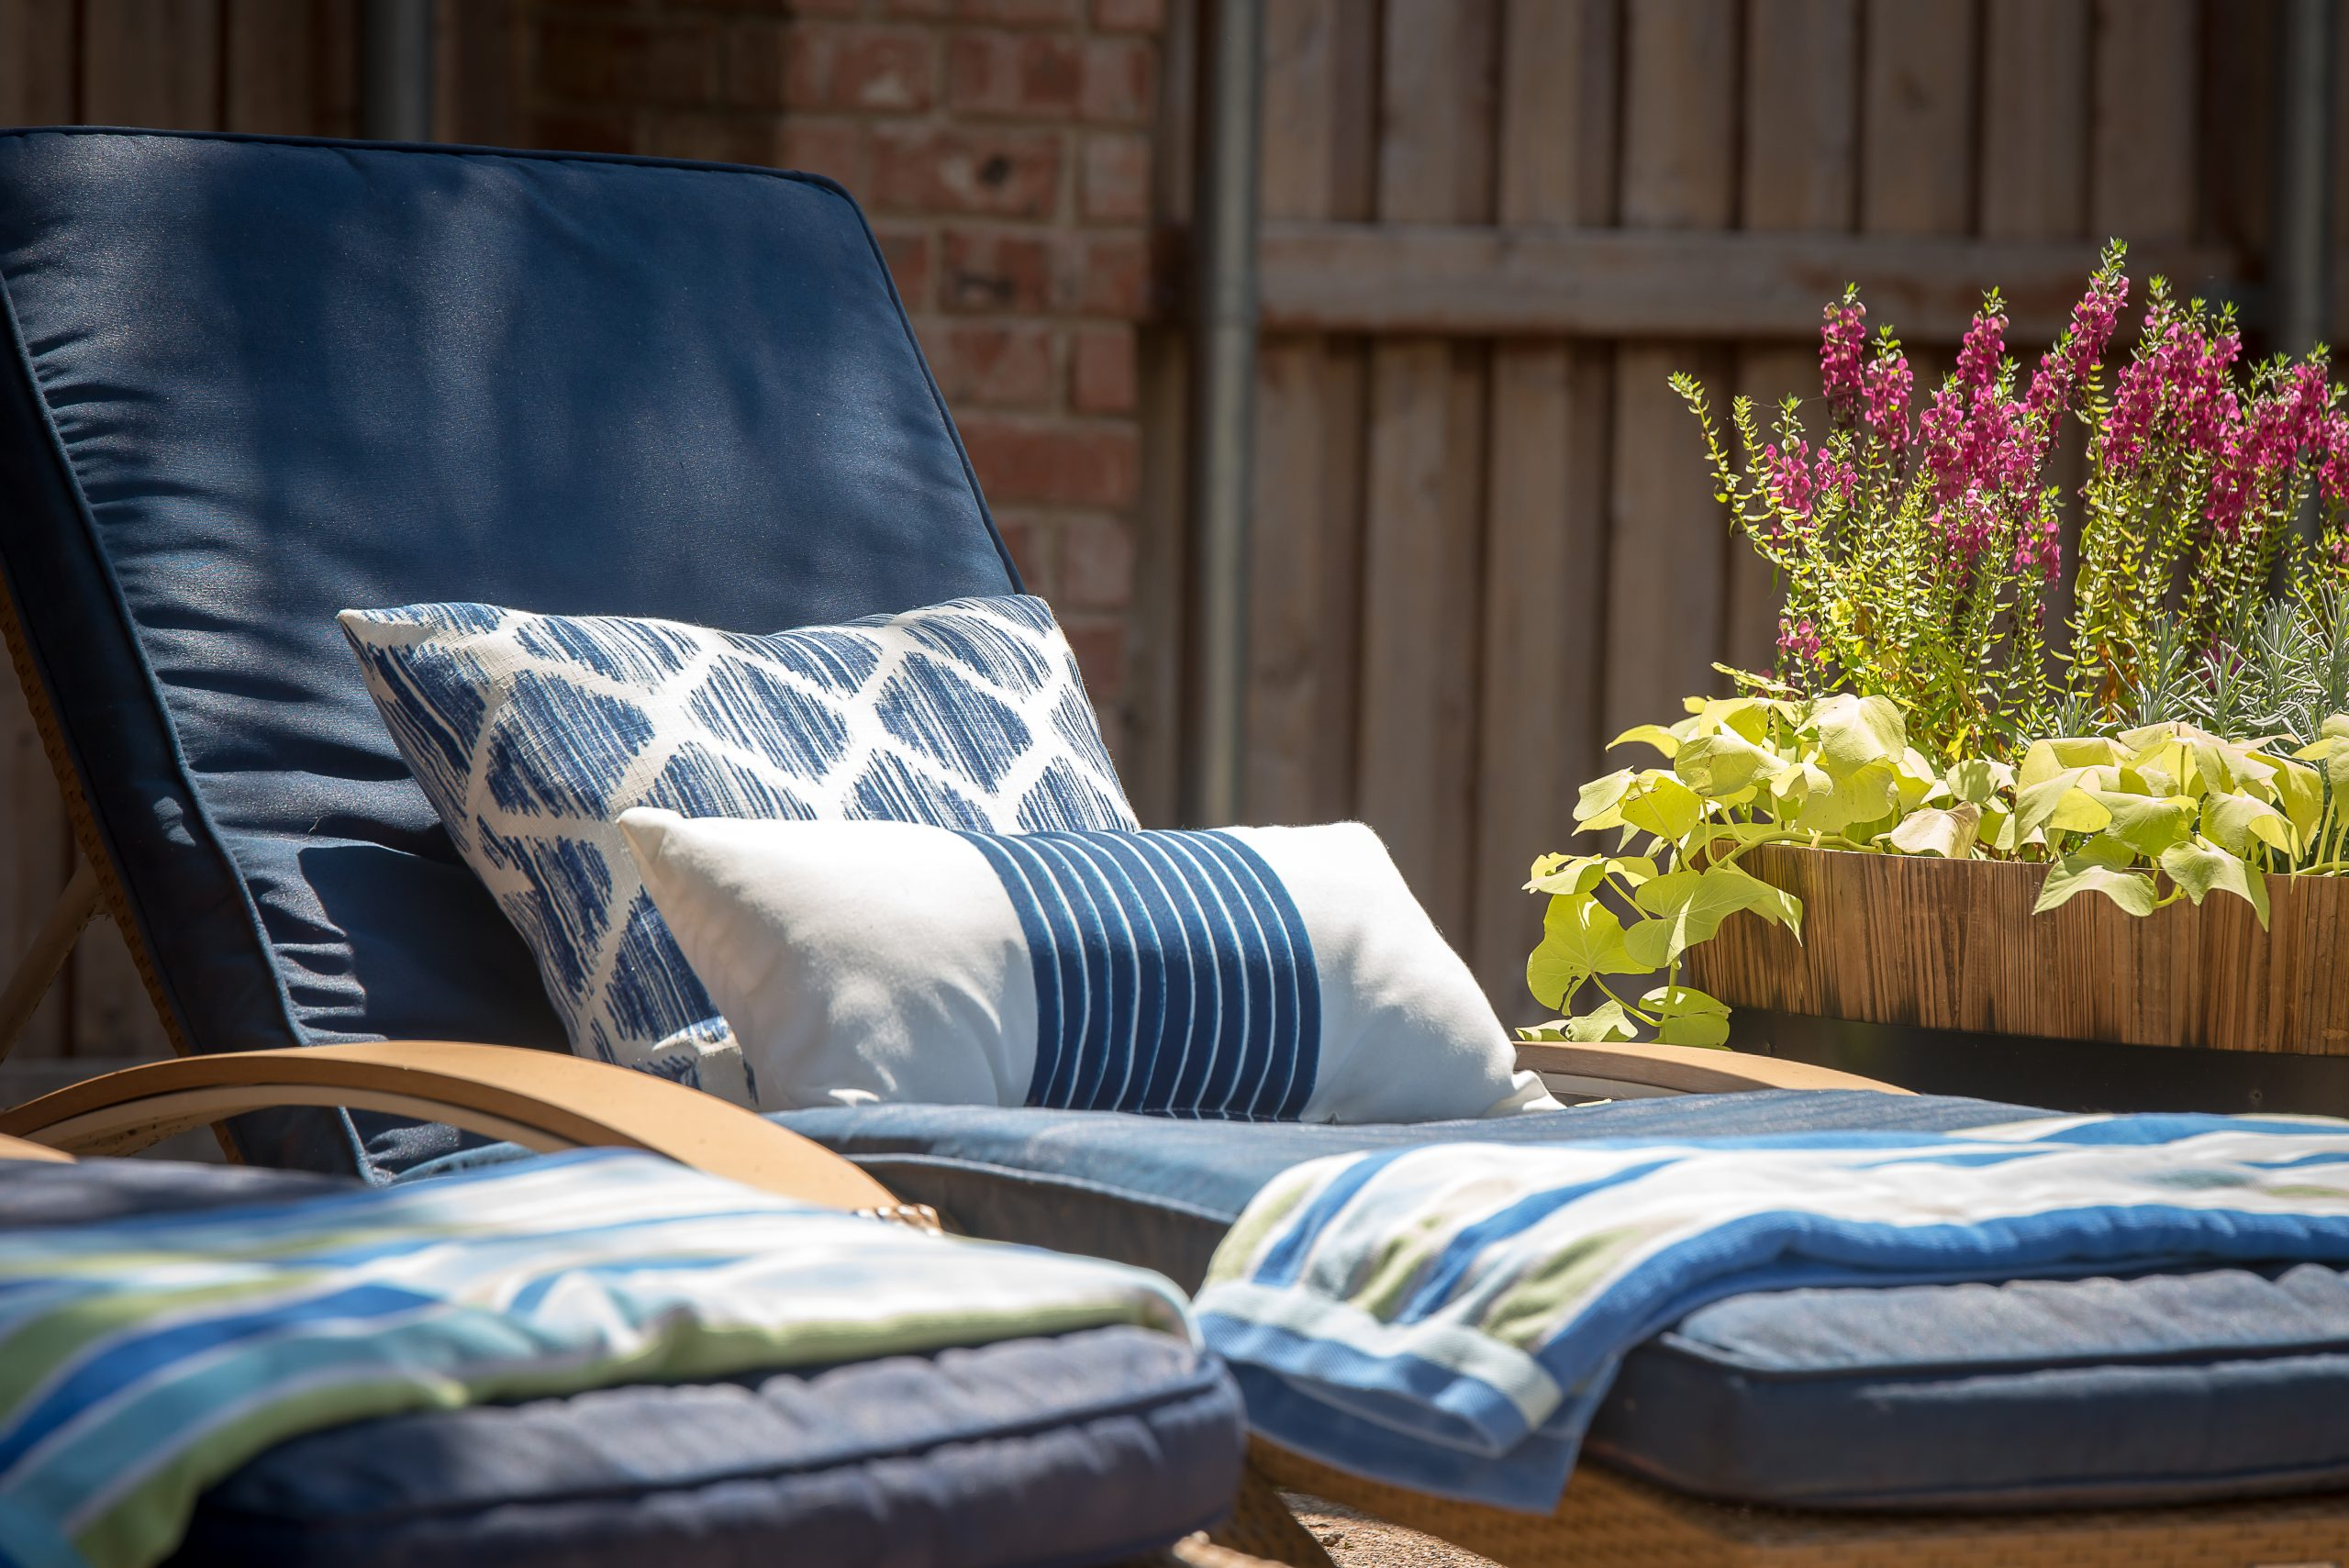 How To Spray Paint Your Outdoor Cushions Home Decor And Home Improvement Diy Tutorials